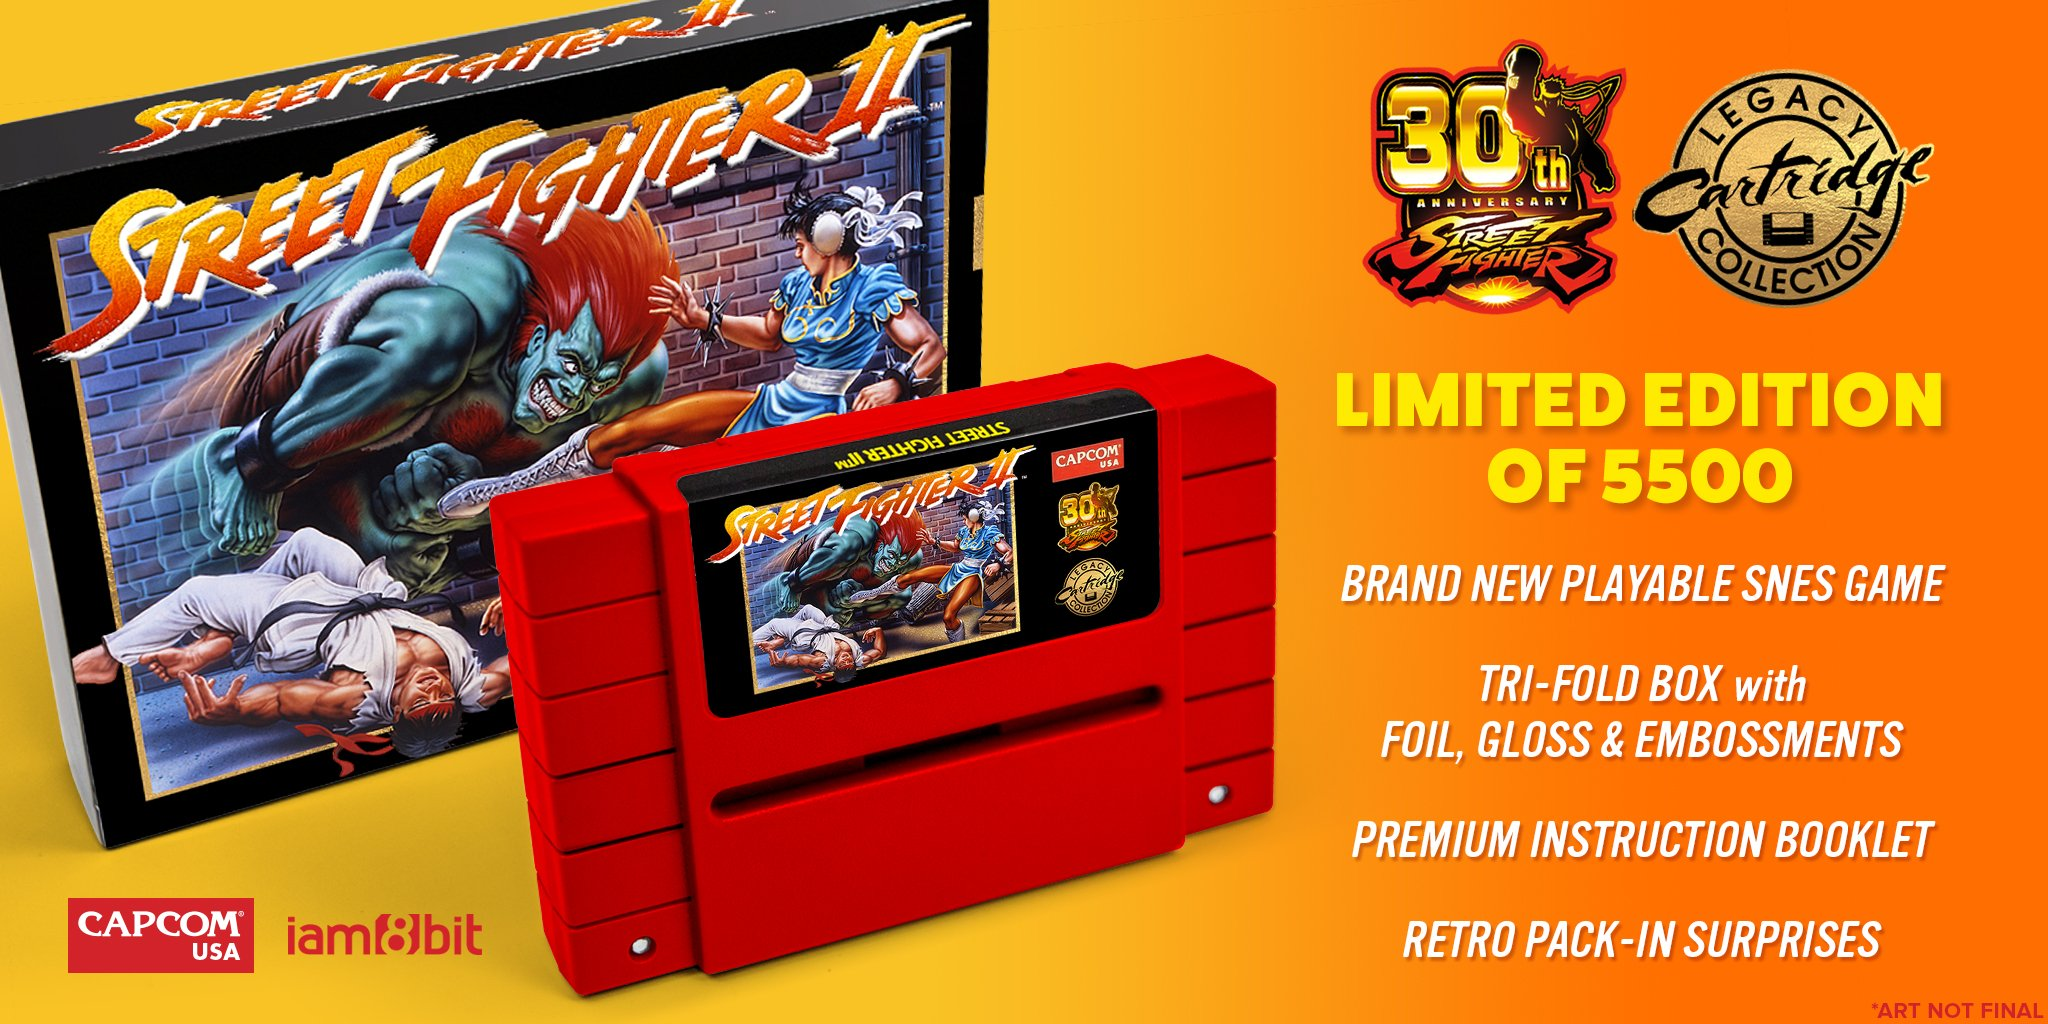 1-street_fighter_II-snes